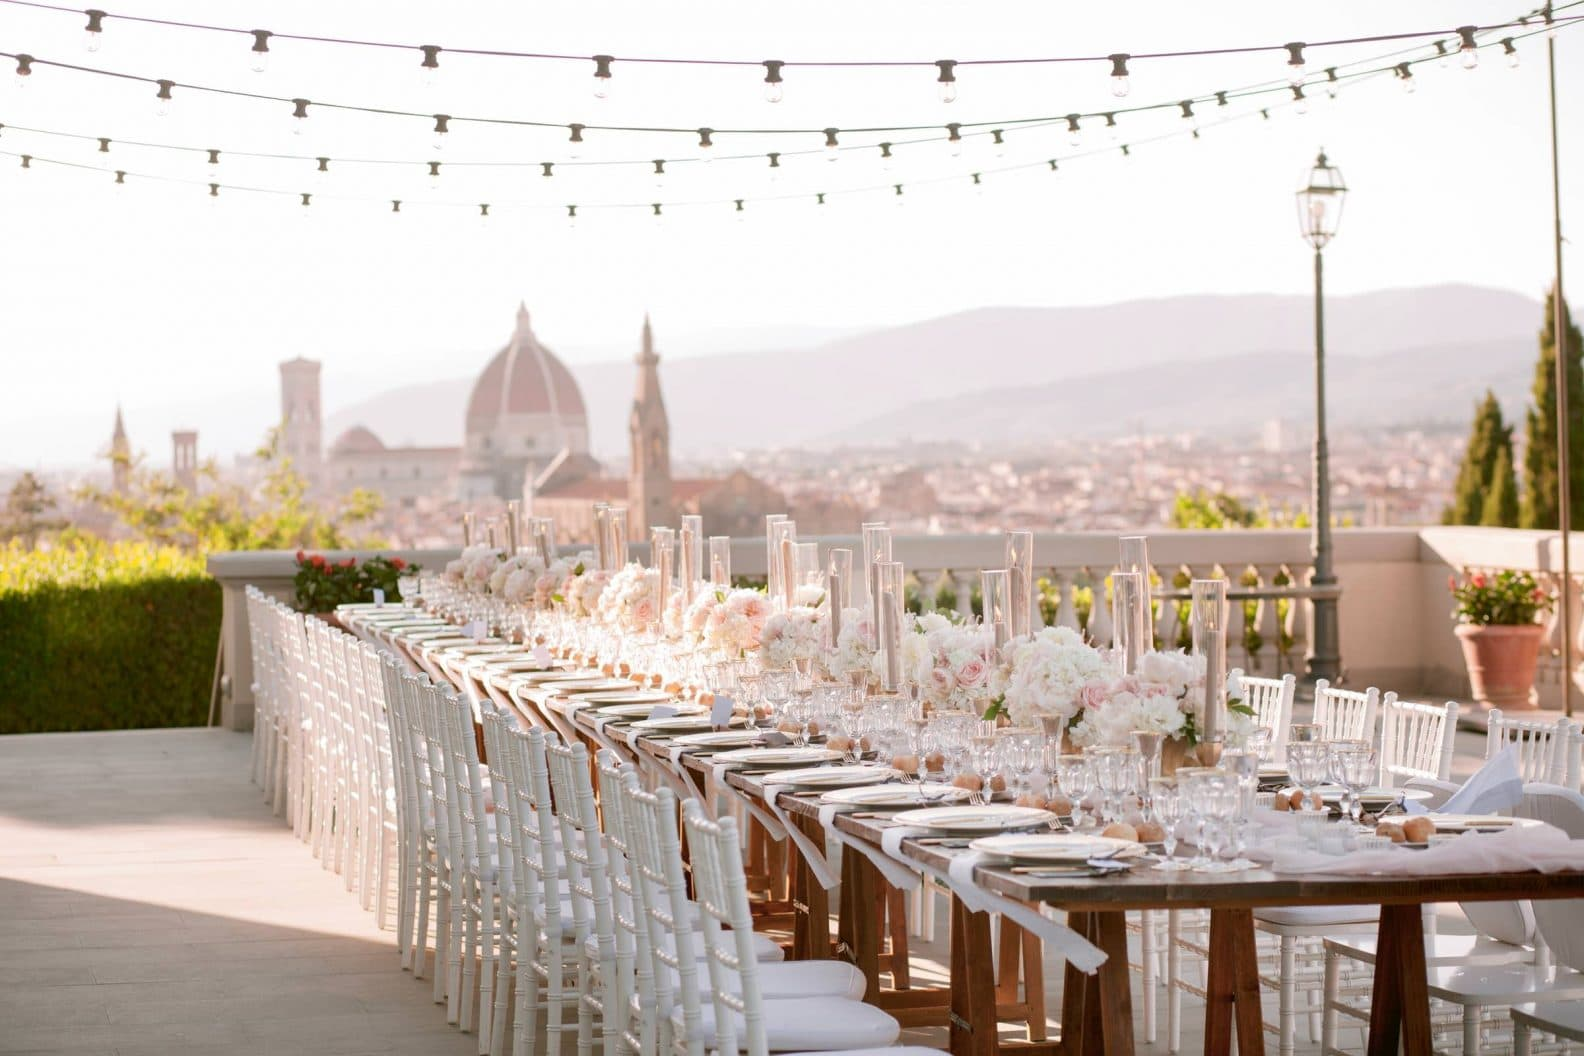 stunning wedding reception setting with Duomo in the background